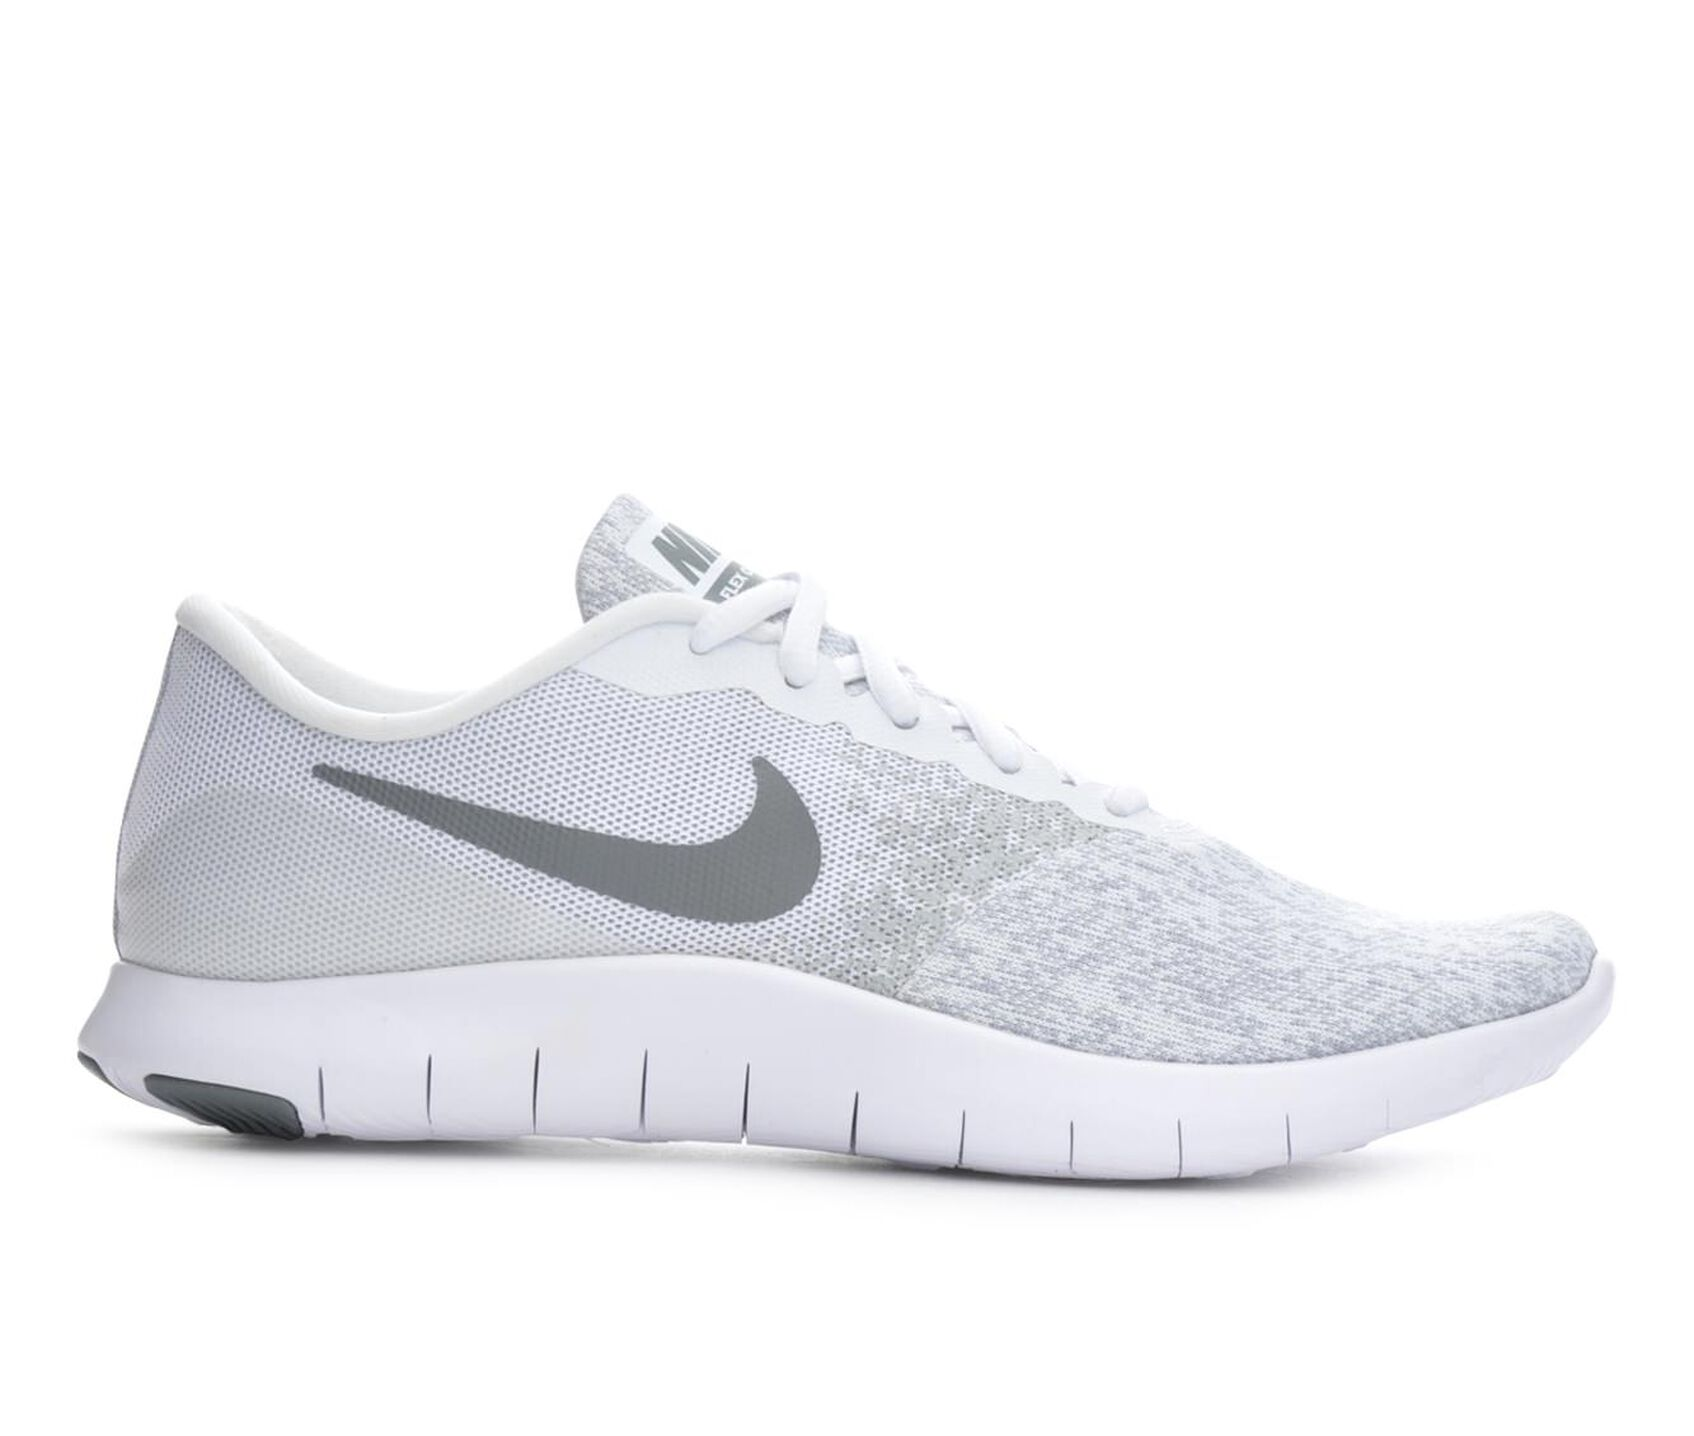 ee46ac0baf Images. Women's Nike Flex Contact Running Shoes